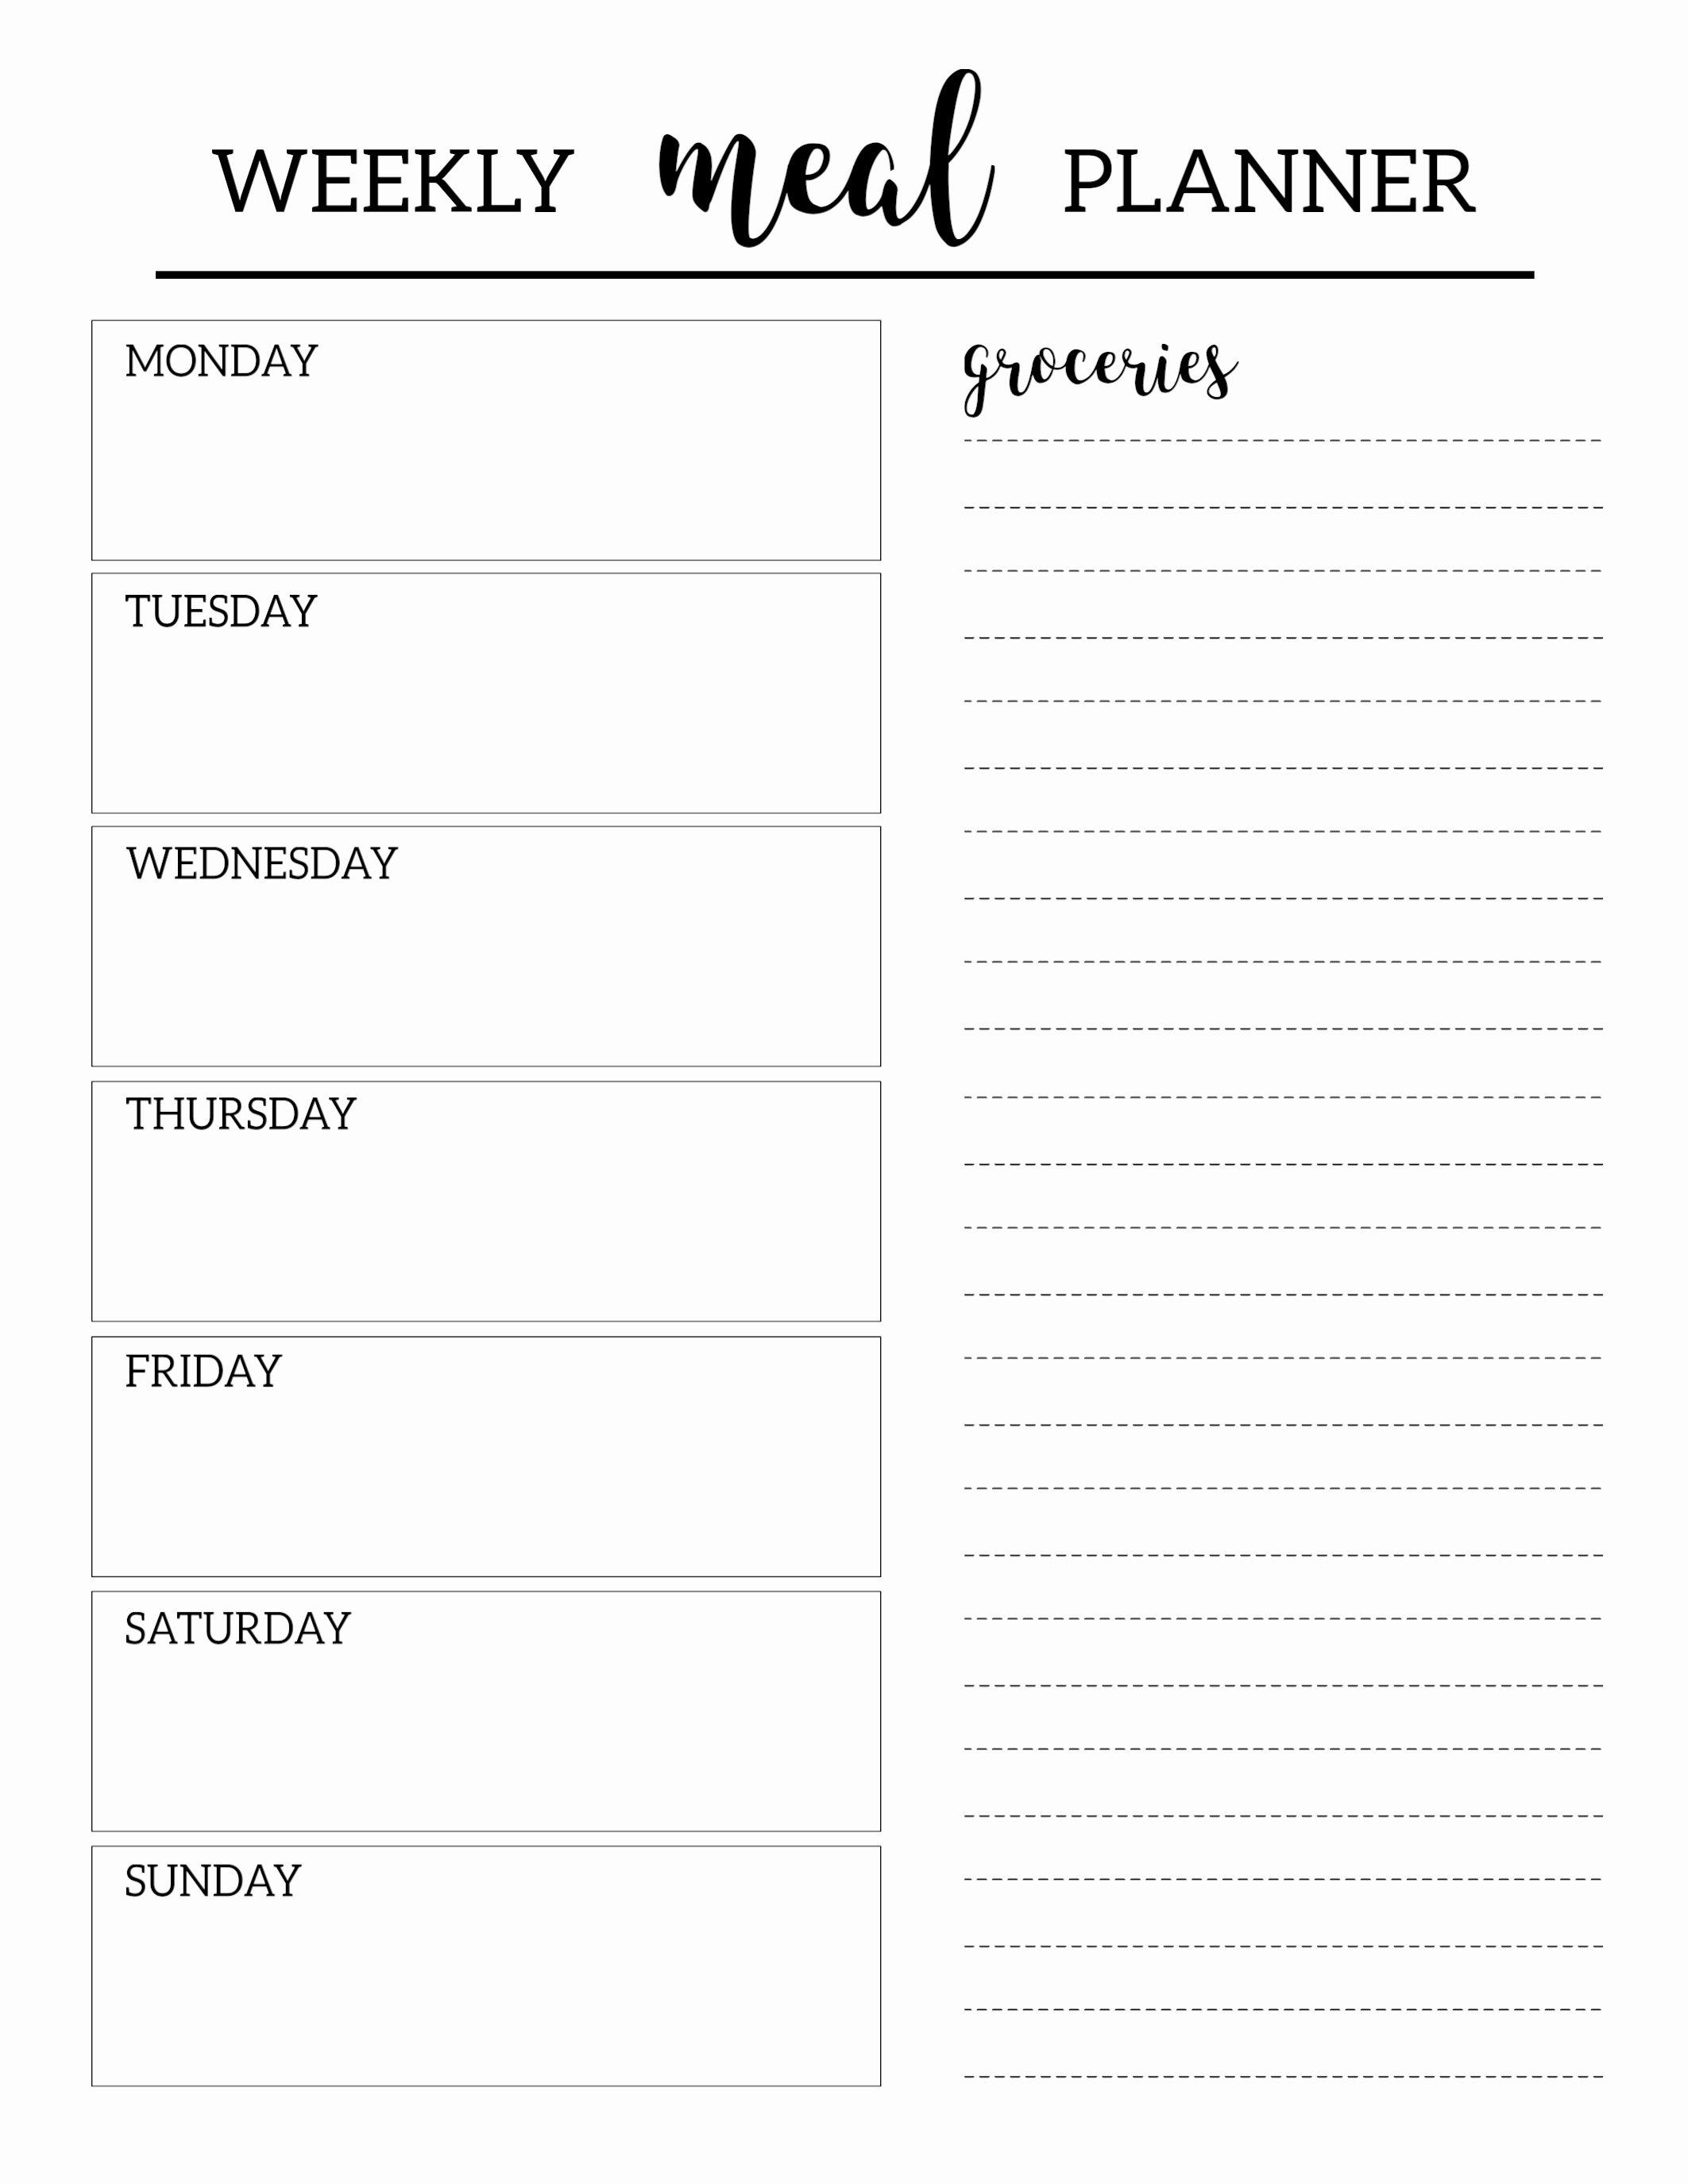 Daily Meal Plan Template Awesome Free Printable Meal Planner Template Paper Trail Design